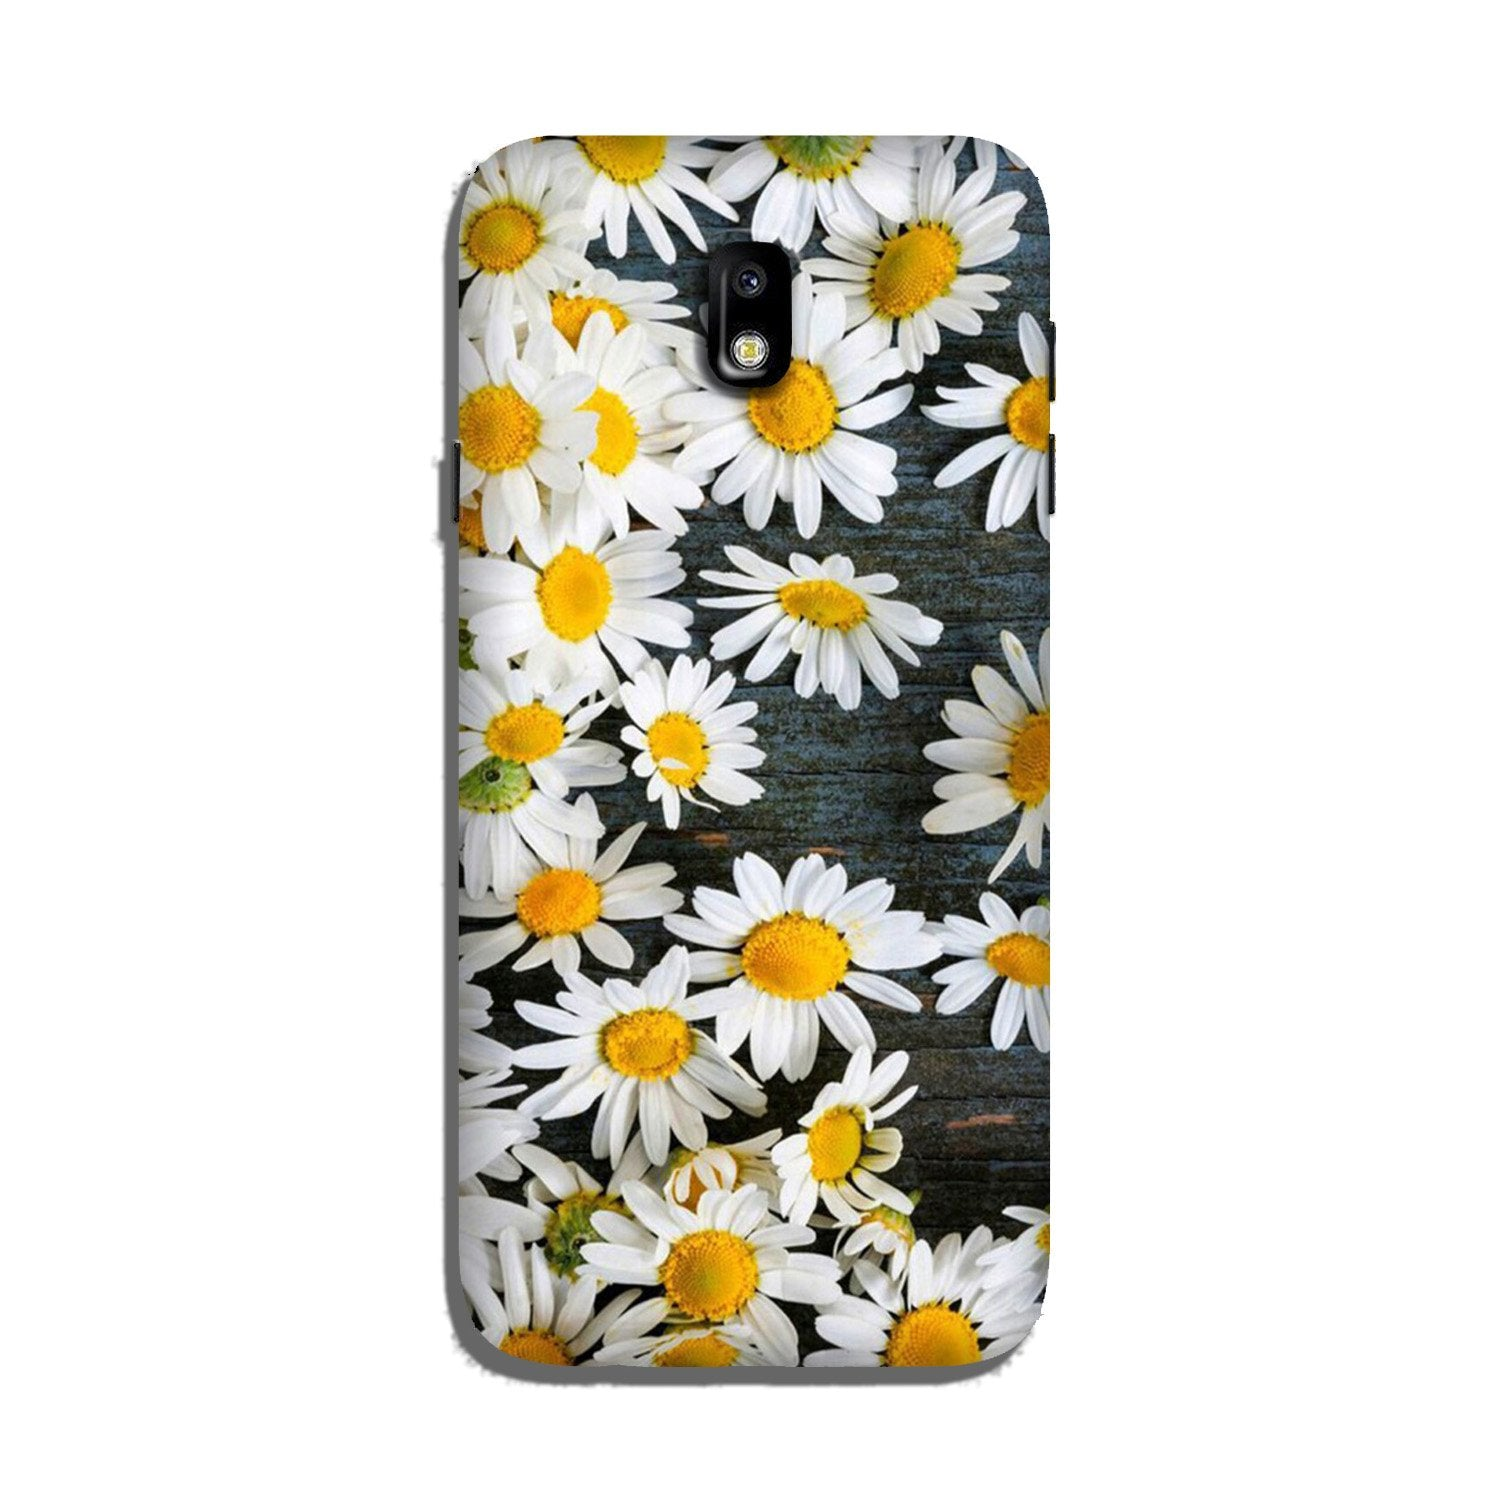 White flowers2 Case for Galaxy J3 Pro